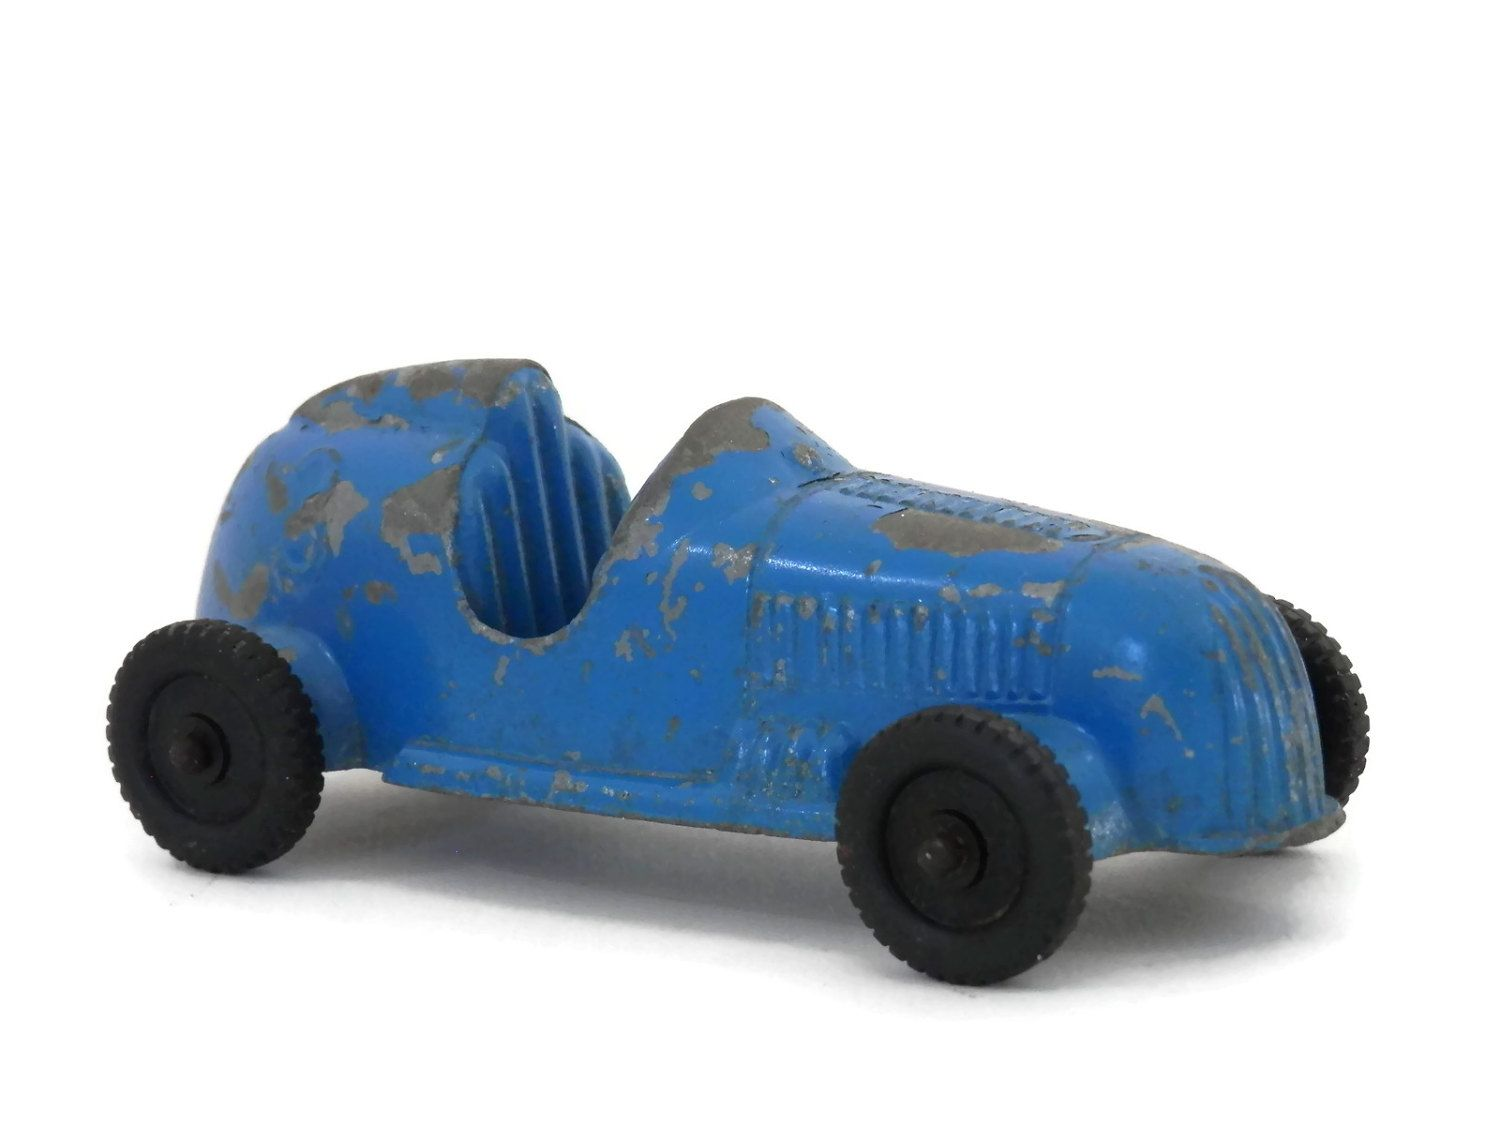 Antique Race Car 3 By Tootsie Toy Blue Die Cast Metal With Etsy Toy Car Toy Race Cars Toys